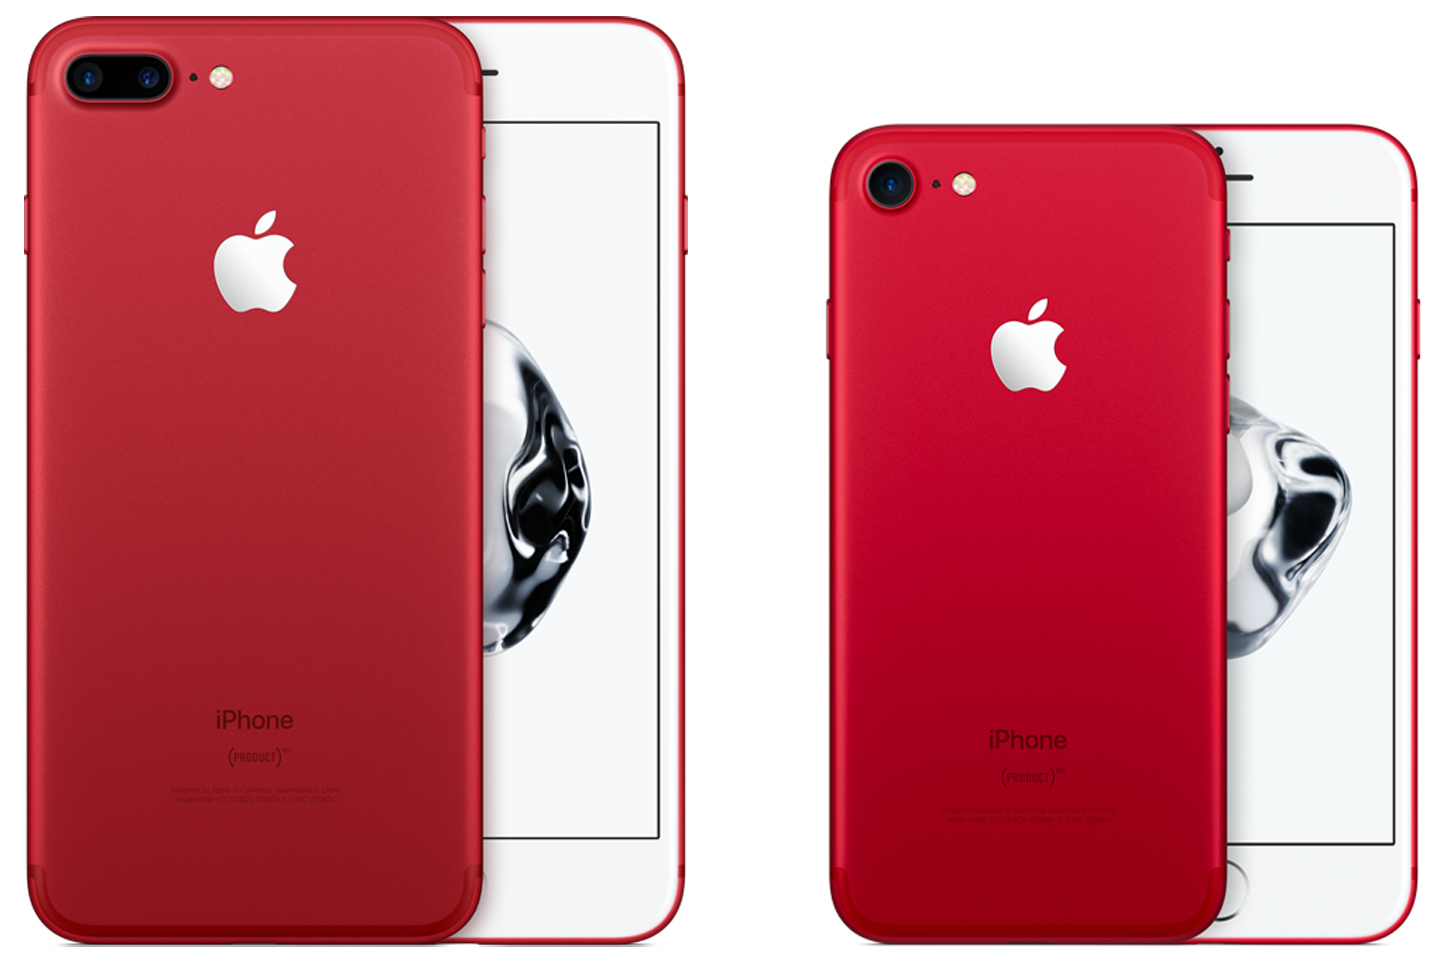 iphone7 red - Say Hello to the iPhone 7 and 7 Plus... in Red